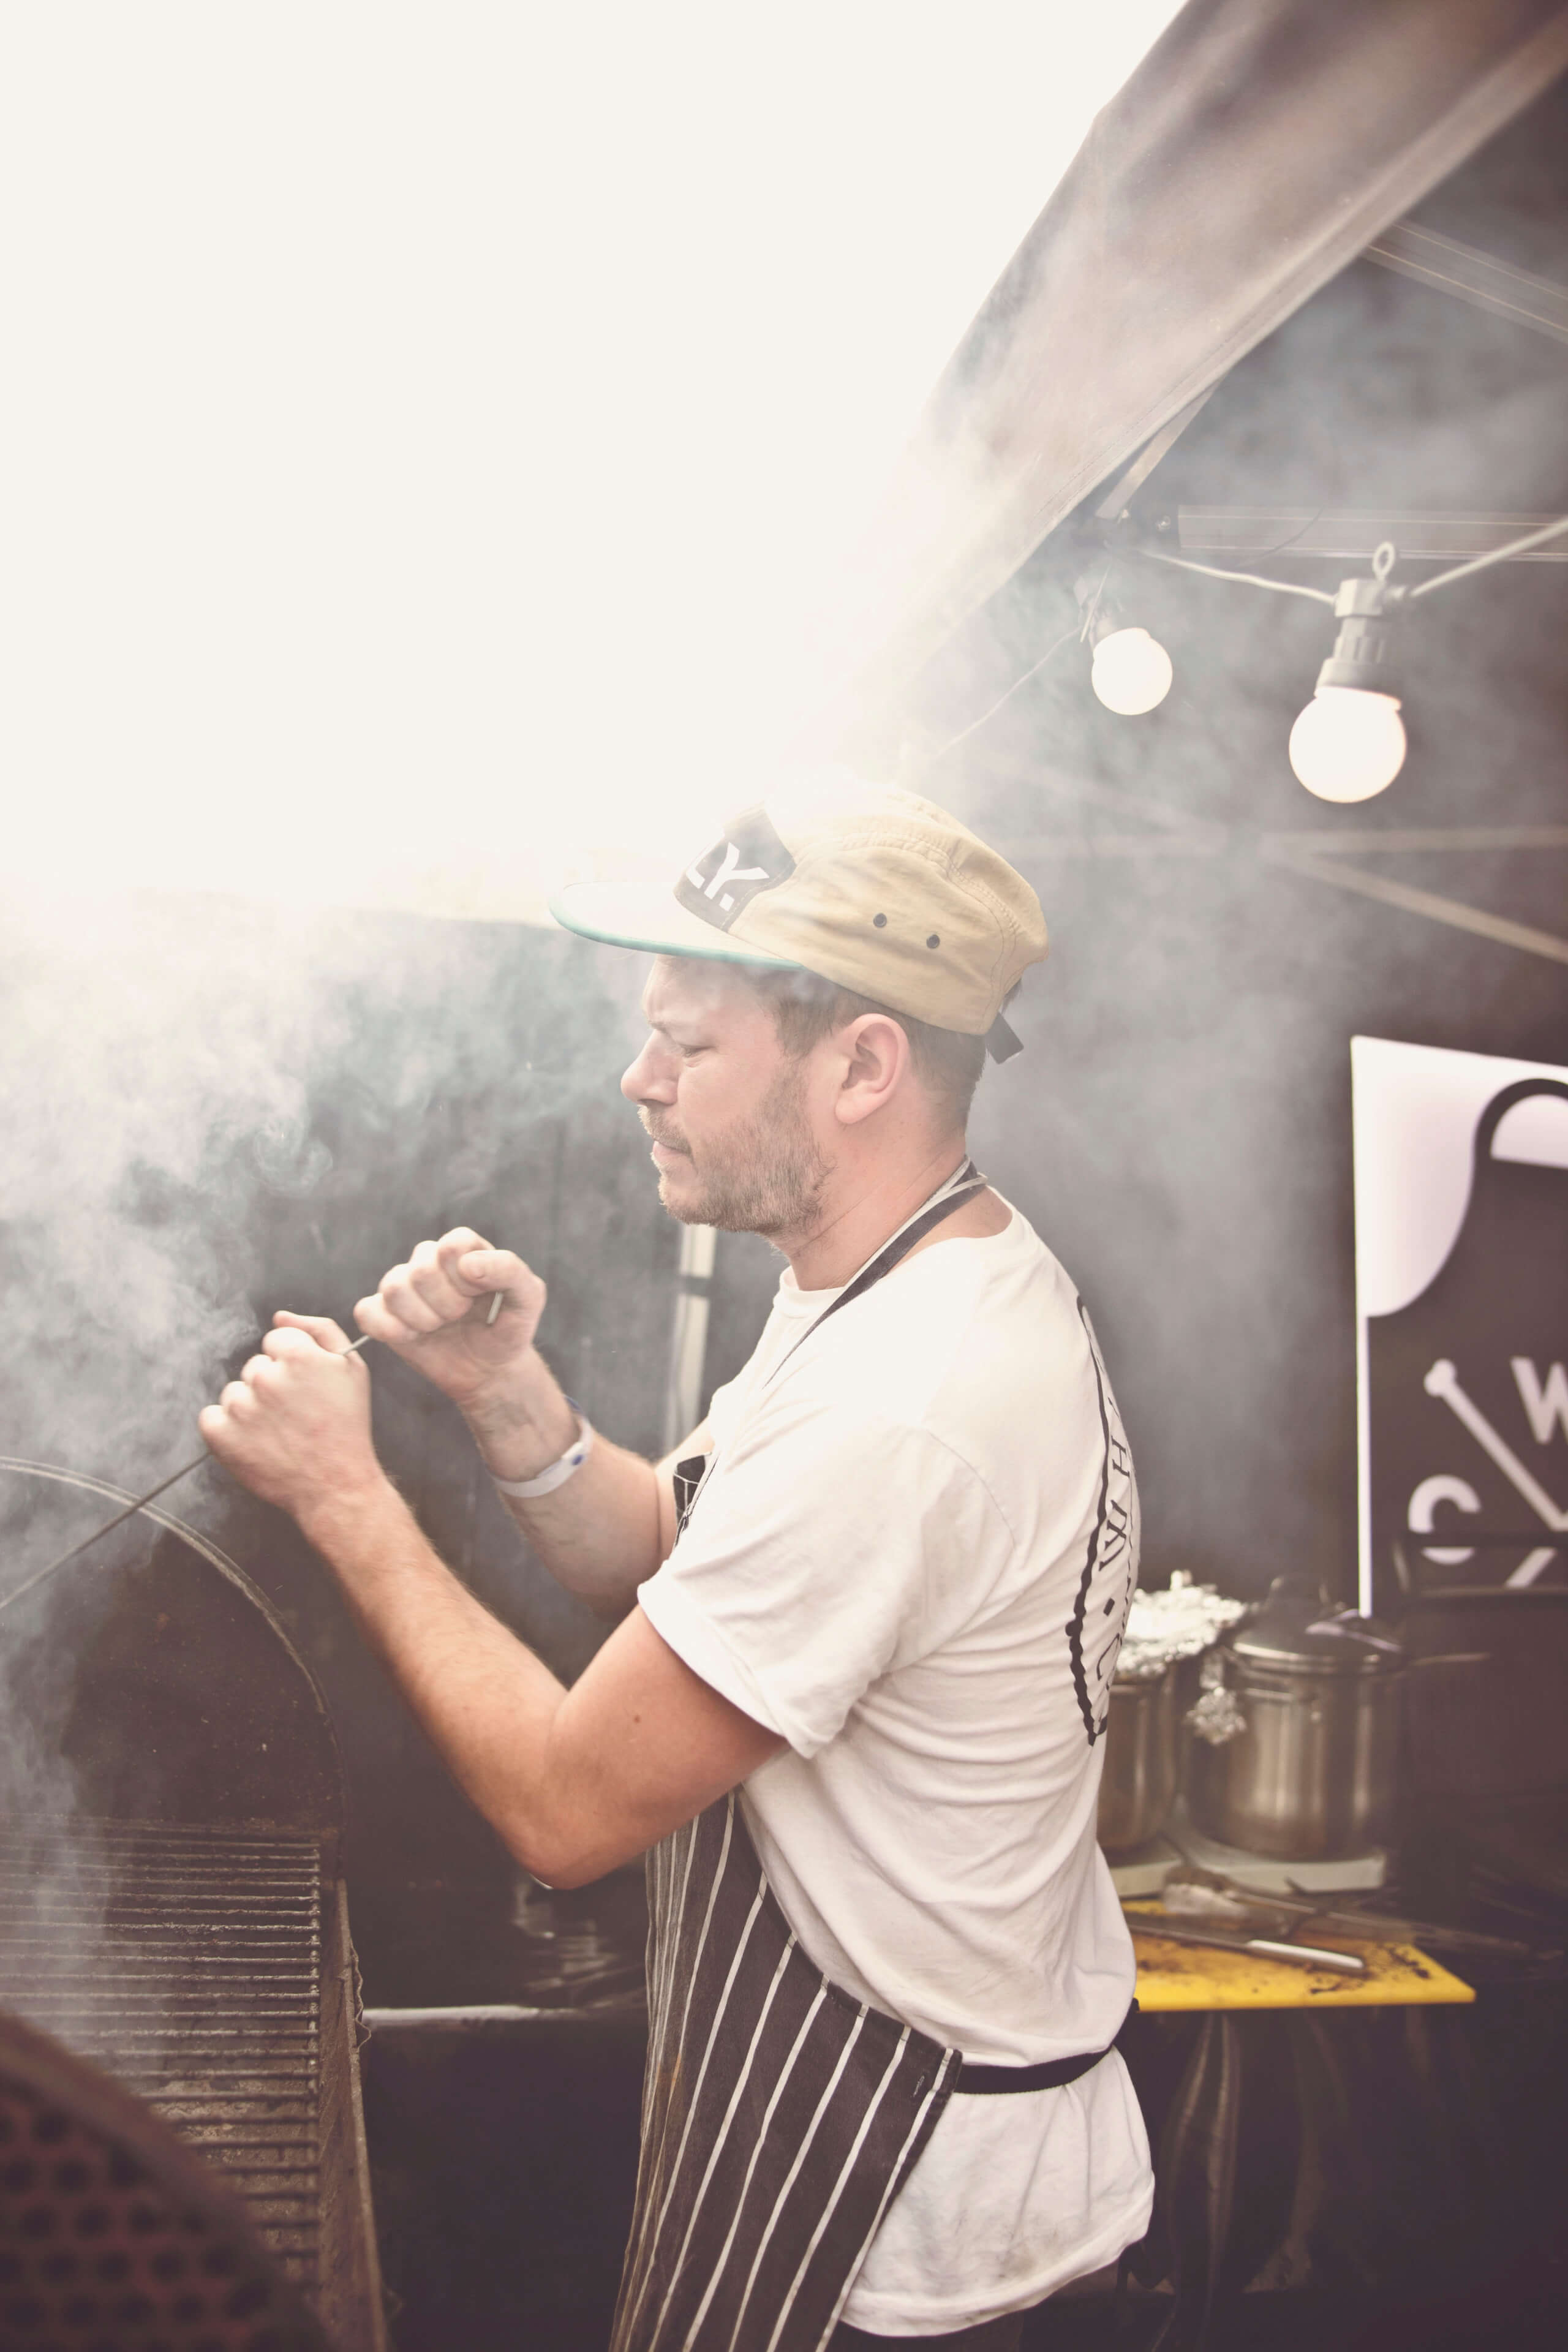 The Flipside How To Build A Street Food Business About Time